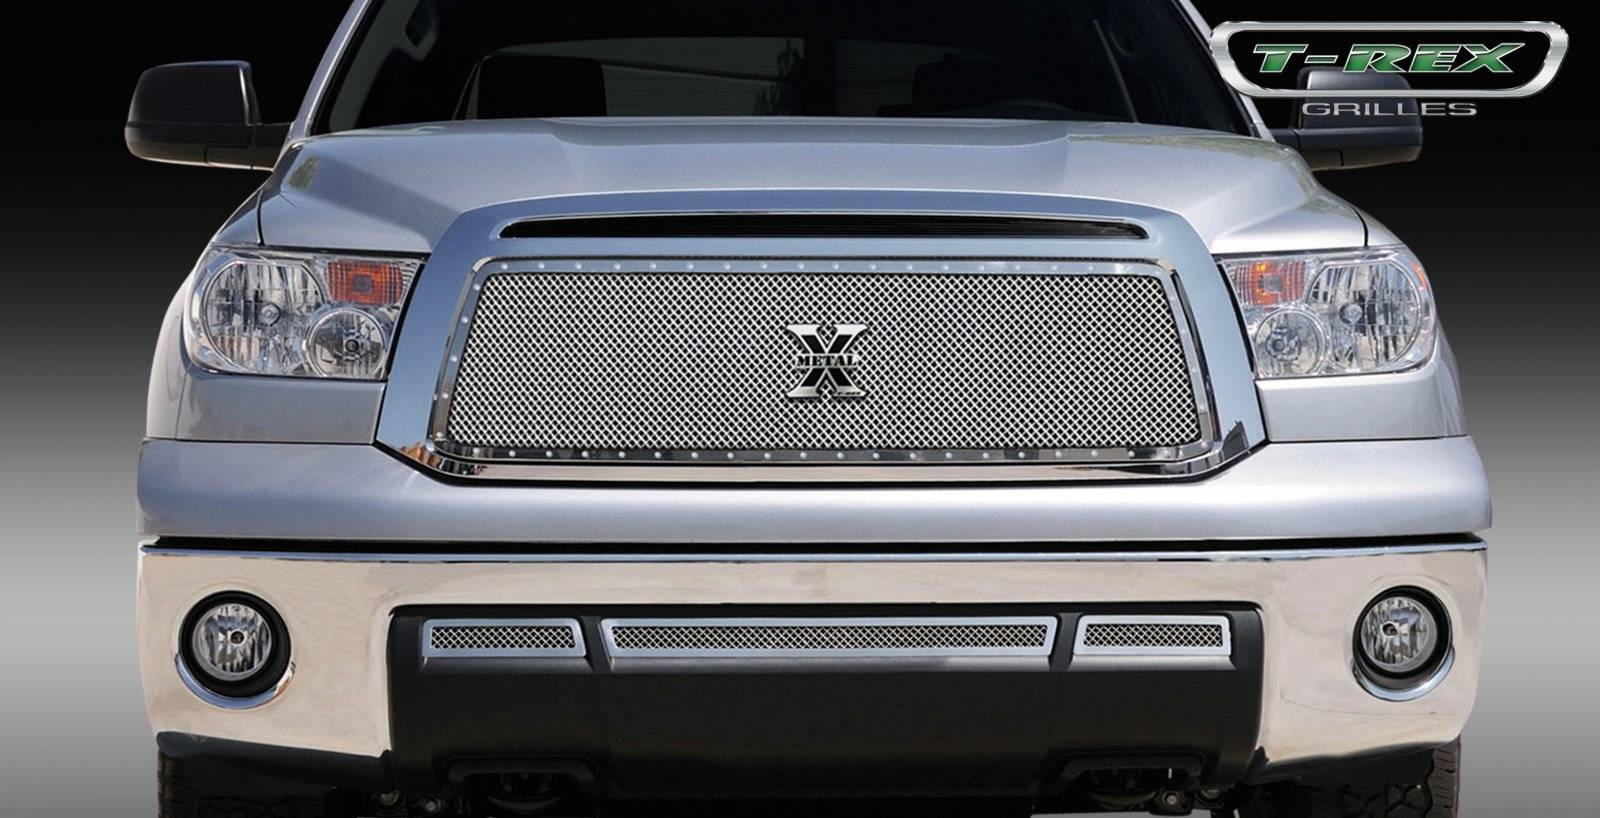 T-REX Toyota Tundra  X-METAL Series - Studded Main Grille - Polished SS - Pt # 6719630